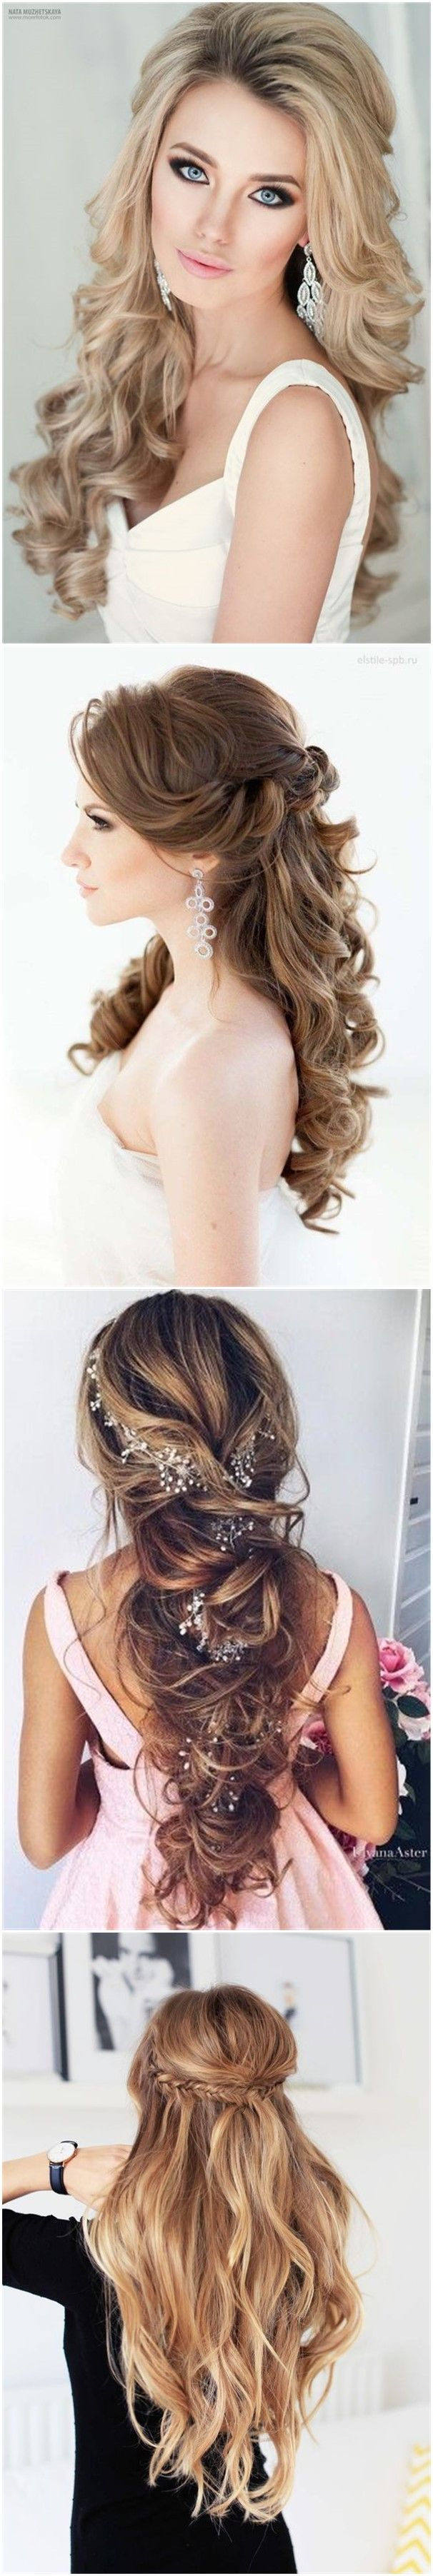 2017 06 homecoming hairstyles long hair - 18 Creative And Unique Wedding Hairstyles For Long Hair